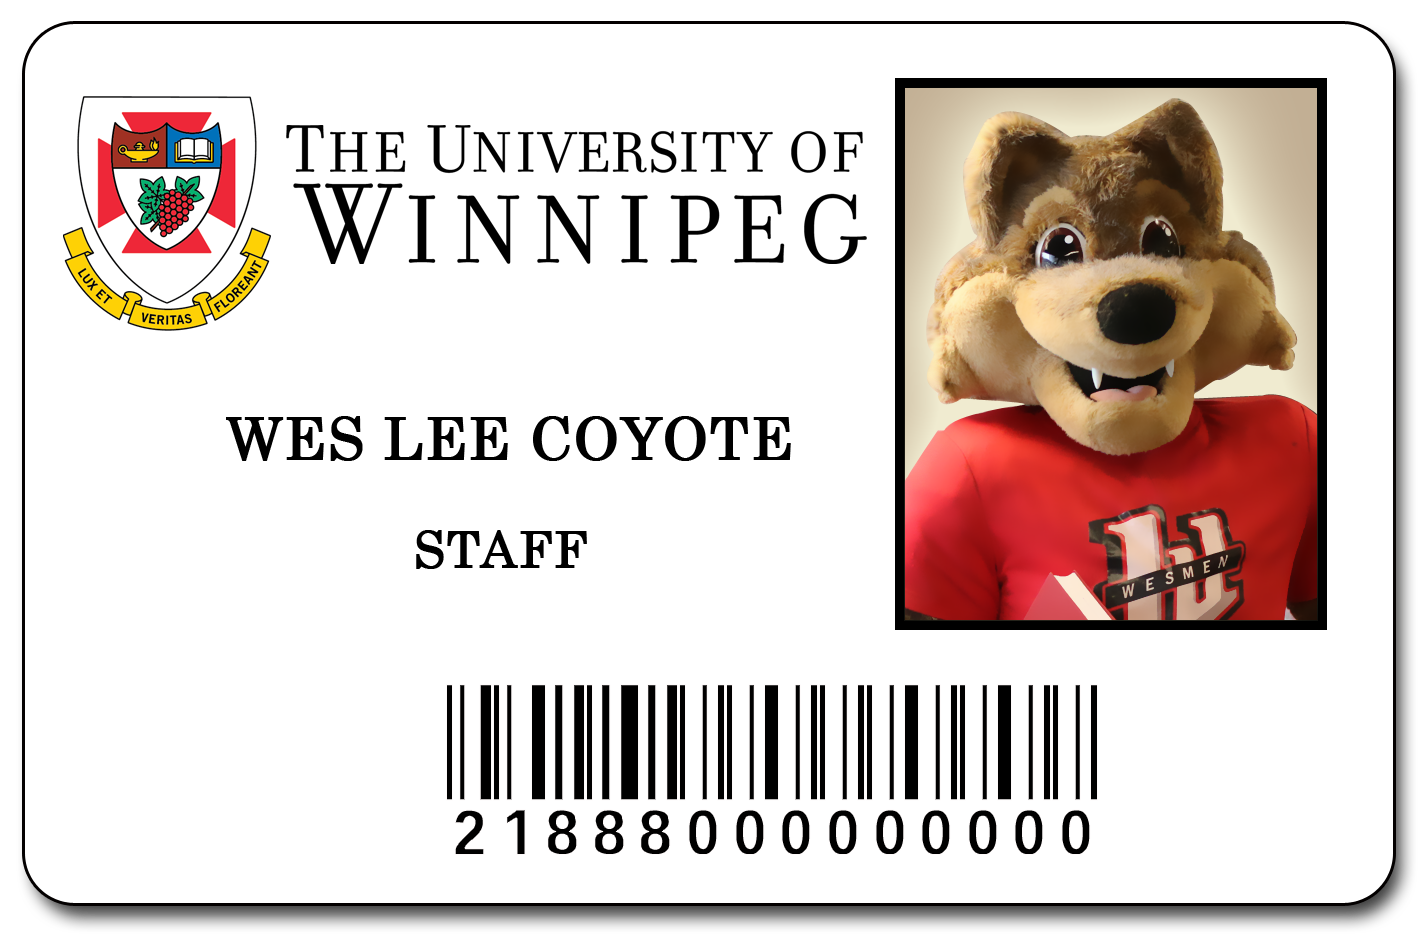 A Photo of Wes Lee Coyote's ID